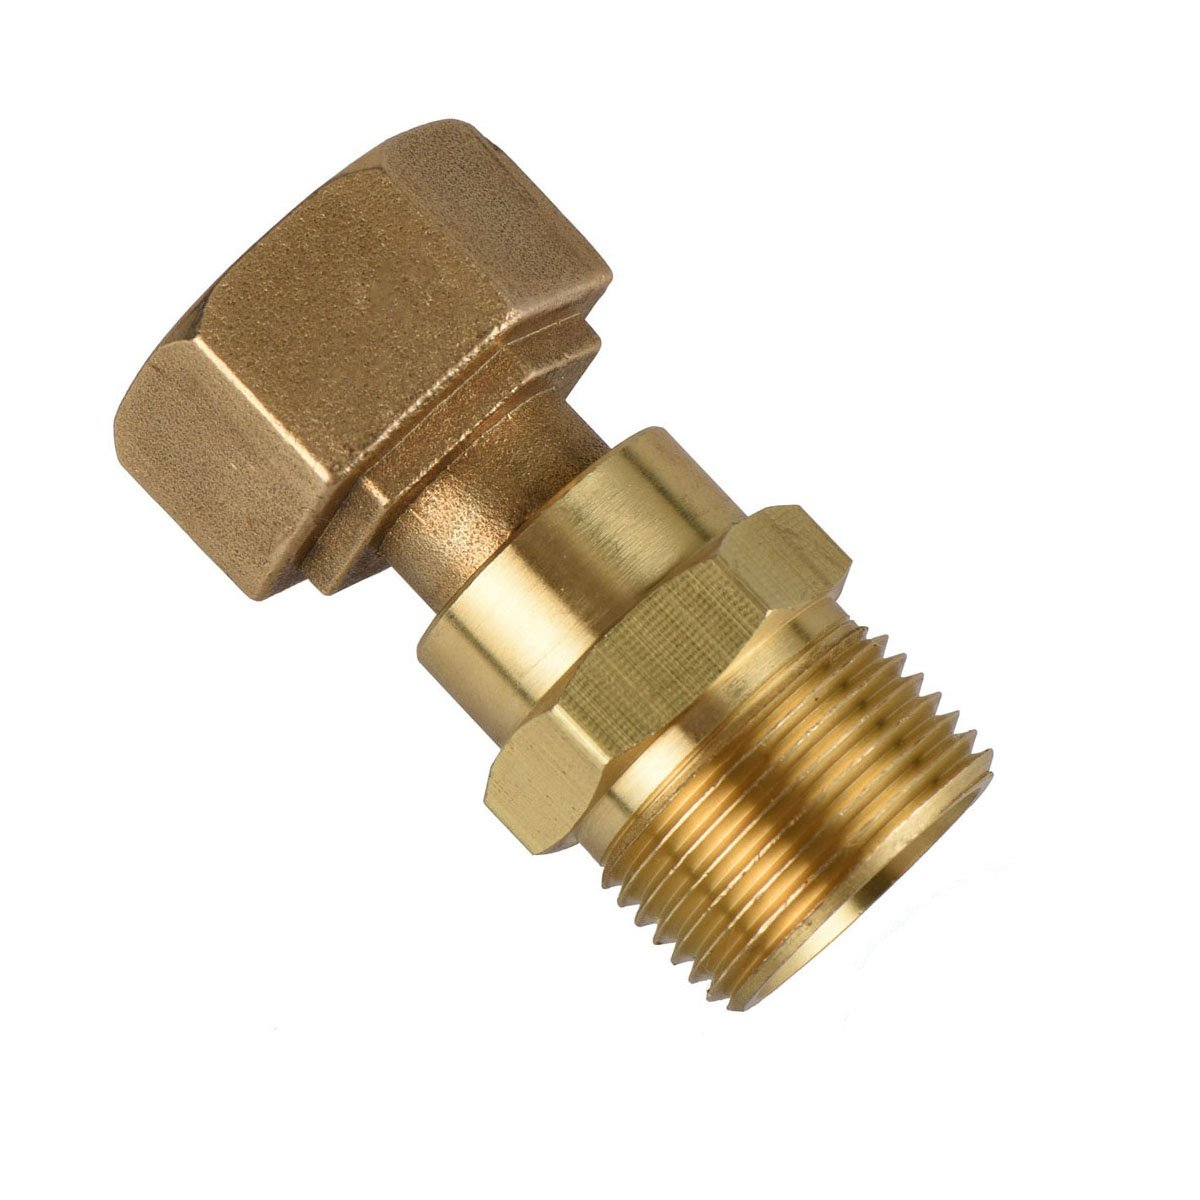 DUSICHIN DUS2222 Gun-Hose Swivel Joint, Kink Free Hose Fitting, Anti-Twist Hose Brass Fitting for Pressure Power Washer Hoses by DUSICHIN